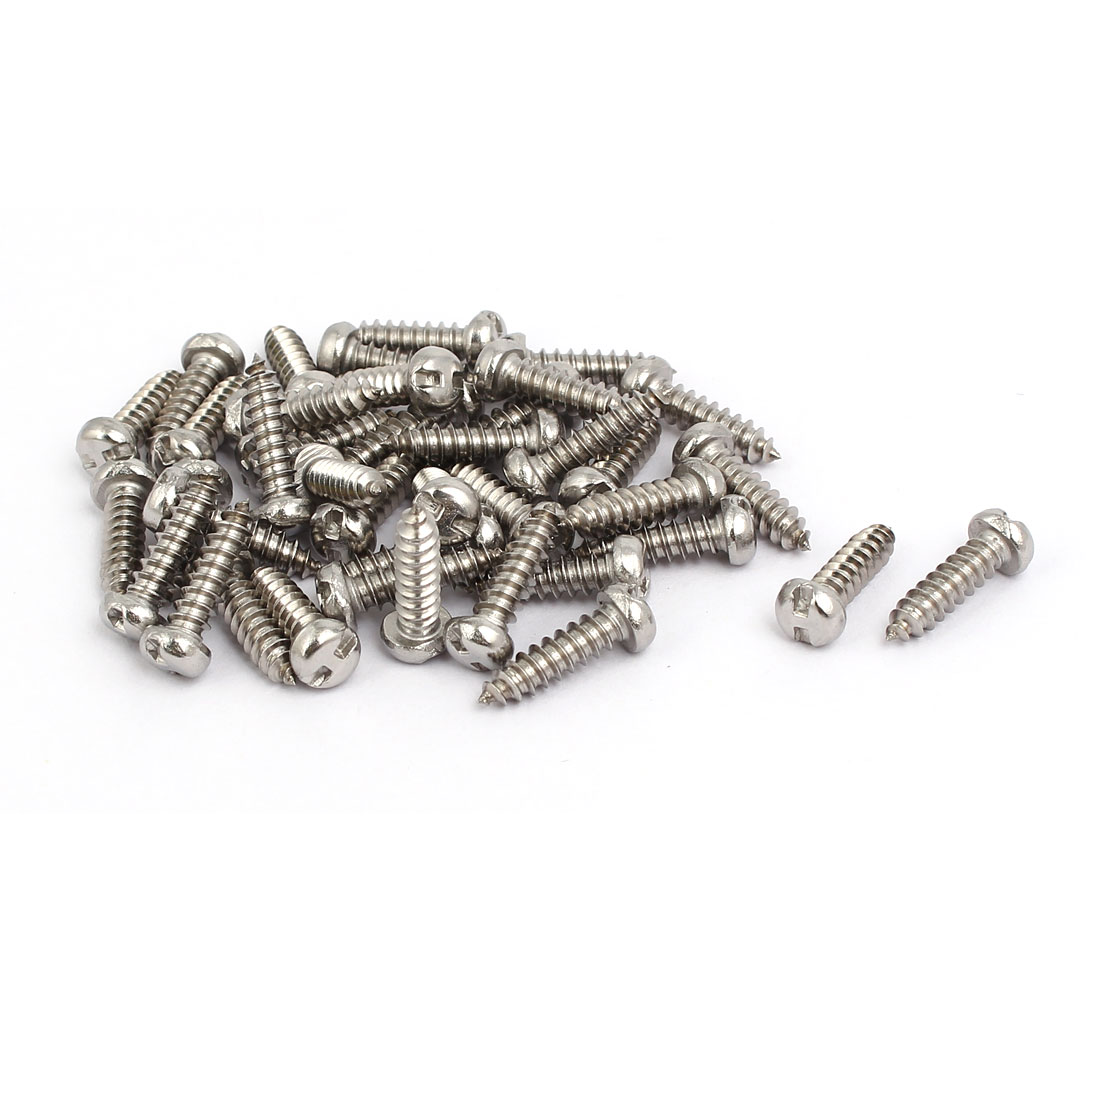 M4.2x16mm 304 Stainless Steel H-Type Pan Head Self Tapping Security Screw 40pcs